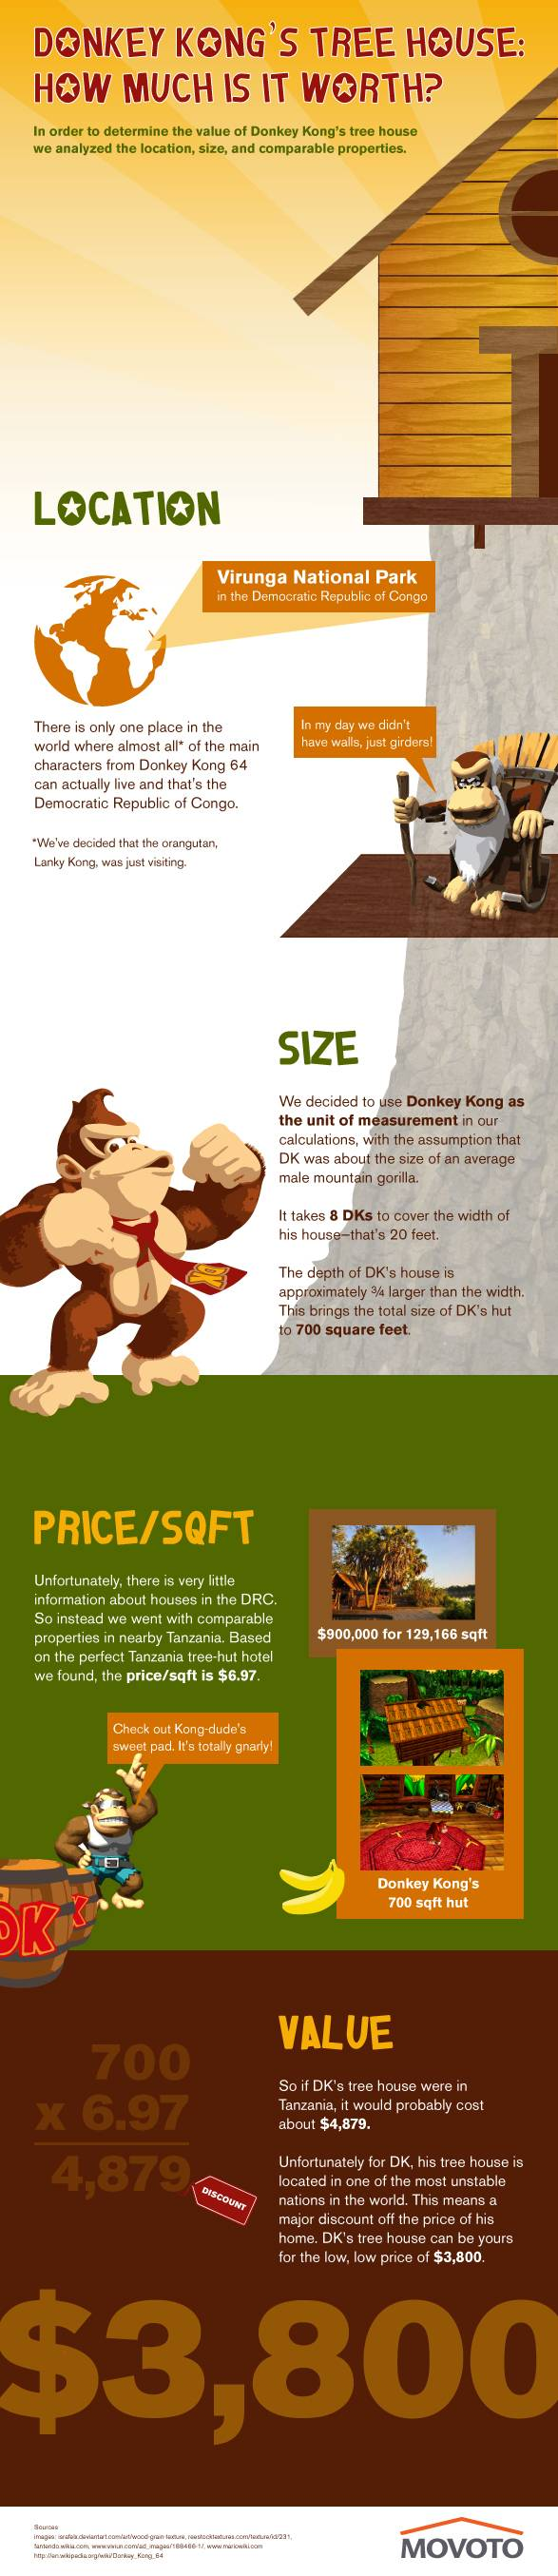 Buy Donkey Kong's Tree House